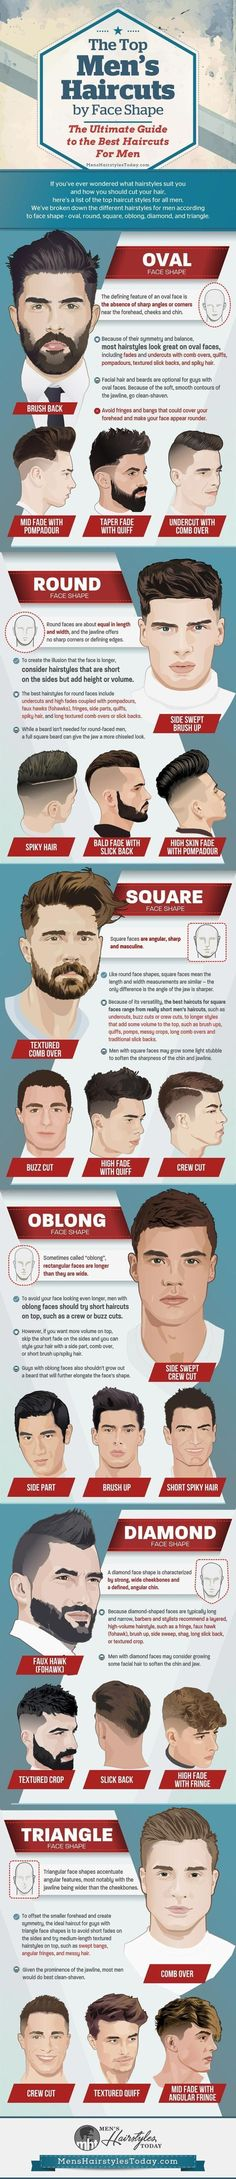 The Best Hairstyles For Men By Face Shape - The Ultimate Guide to Cool Men's Haircuts (Fades, Undercuts, Pompadours, Side Parts, Comb Overs, Quiffs, and Spiky Hair) #3dprintinginfographic